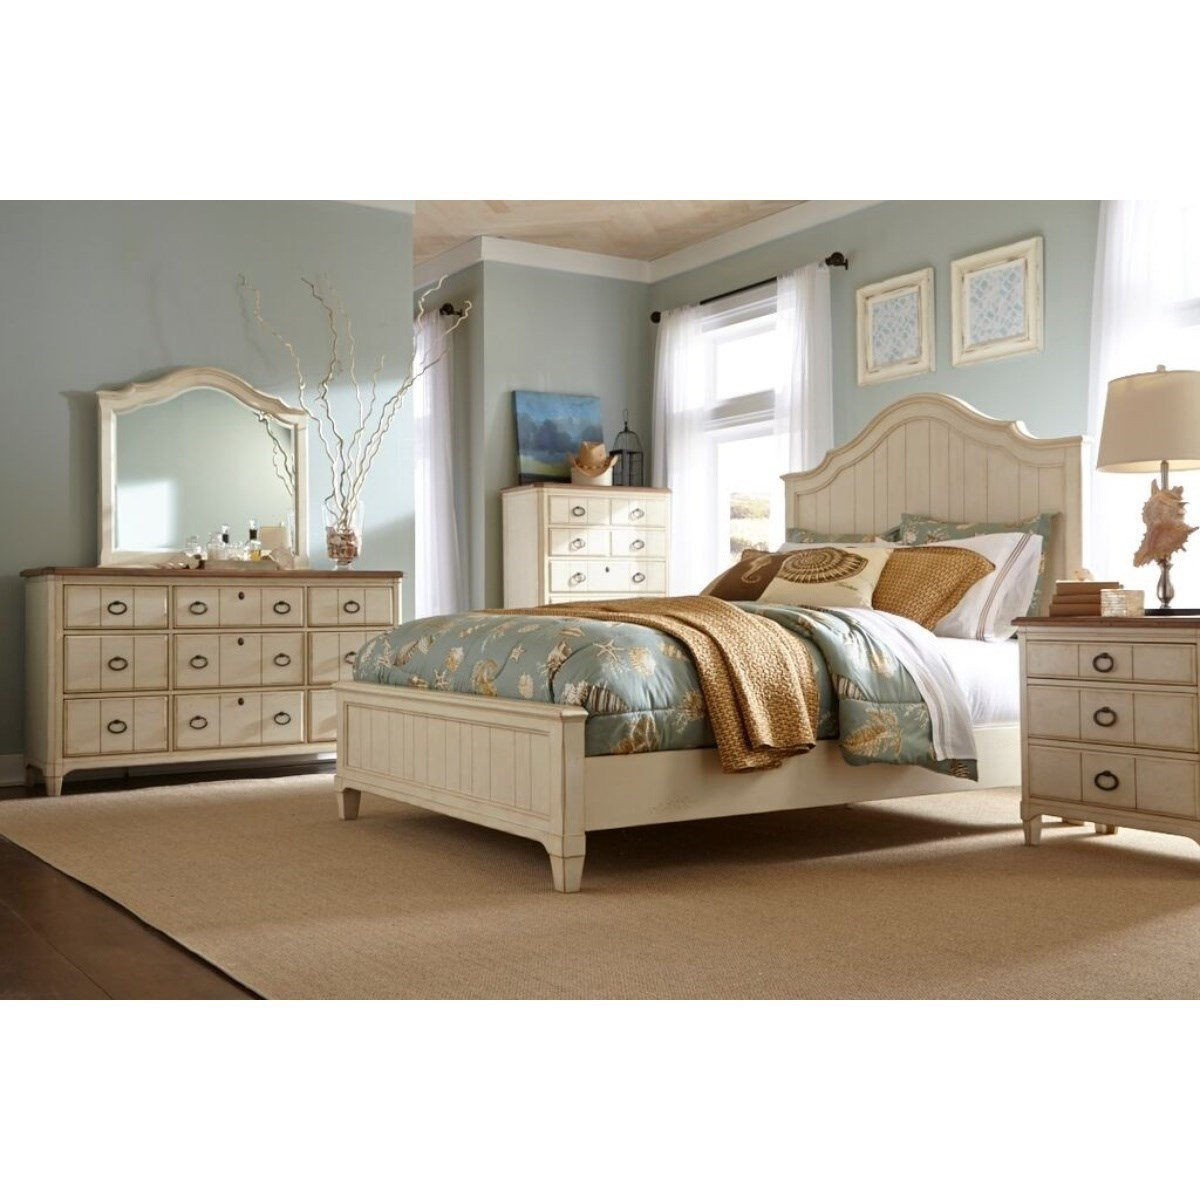 Best Panama Jack By Palmetto Home Millbrook Queen Bedroom Group Baer S Furniture Bedroom Groups With Pictures